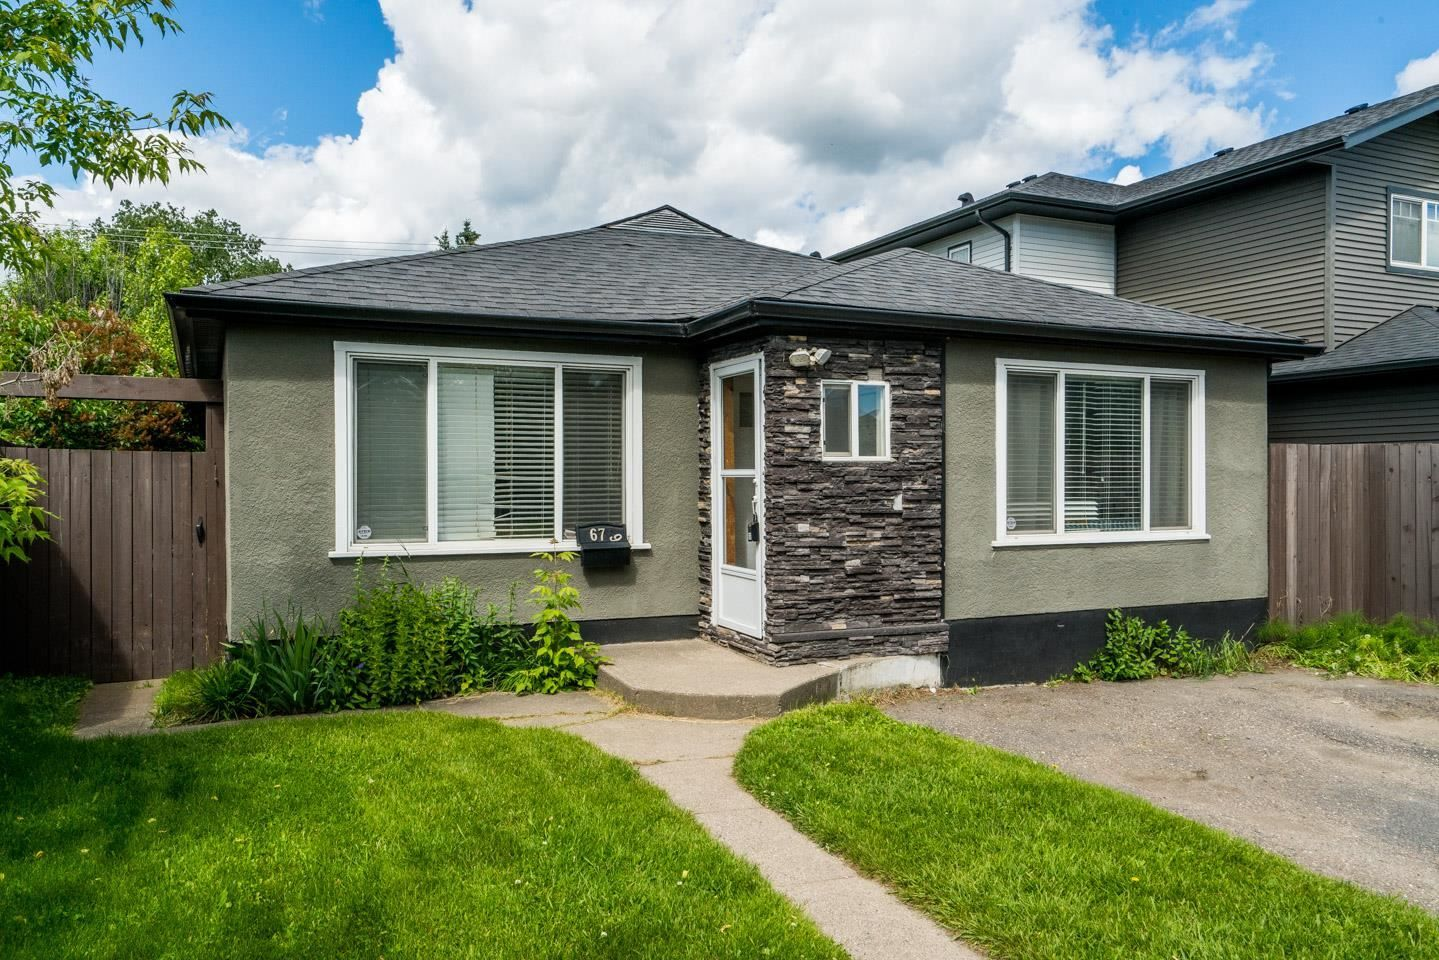 Main Photo: 679 CARNEY Street in Prince George: Central House for sale (PG City Central (Zone 72))  : MLS®# R2593738